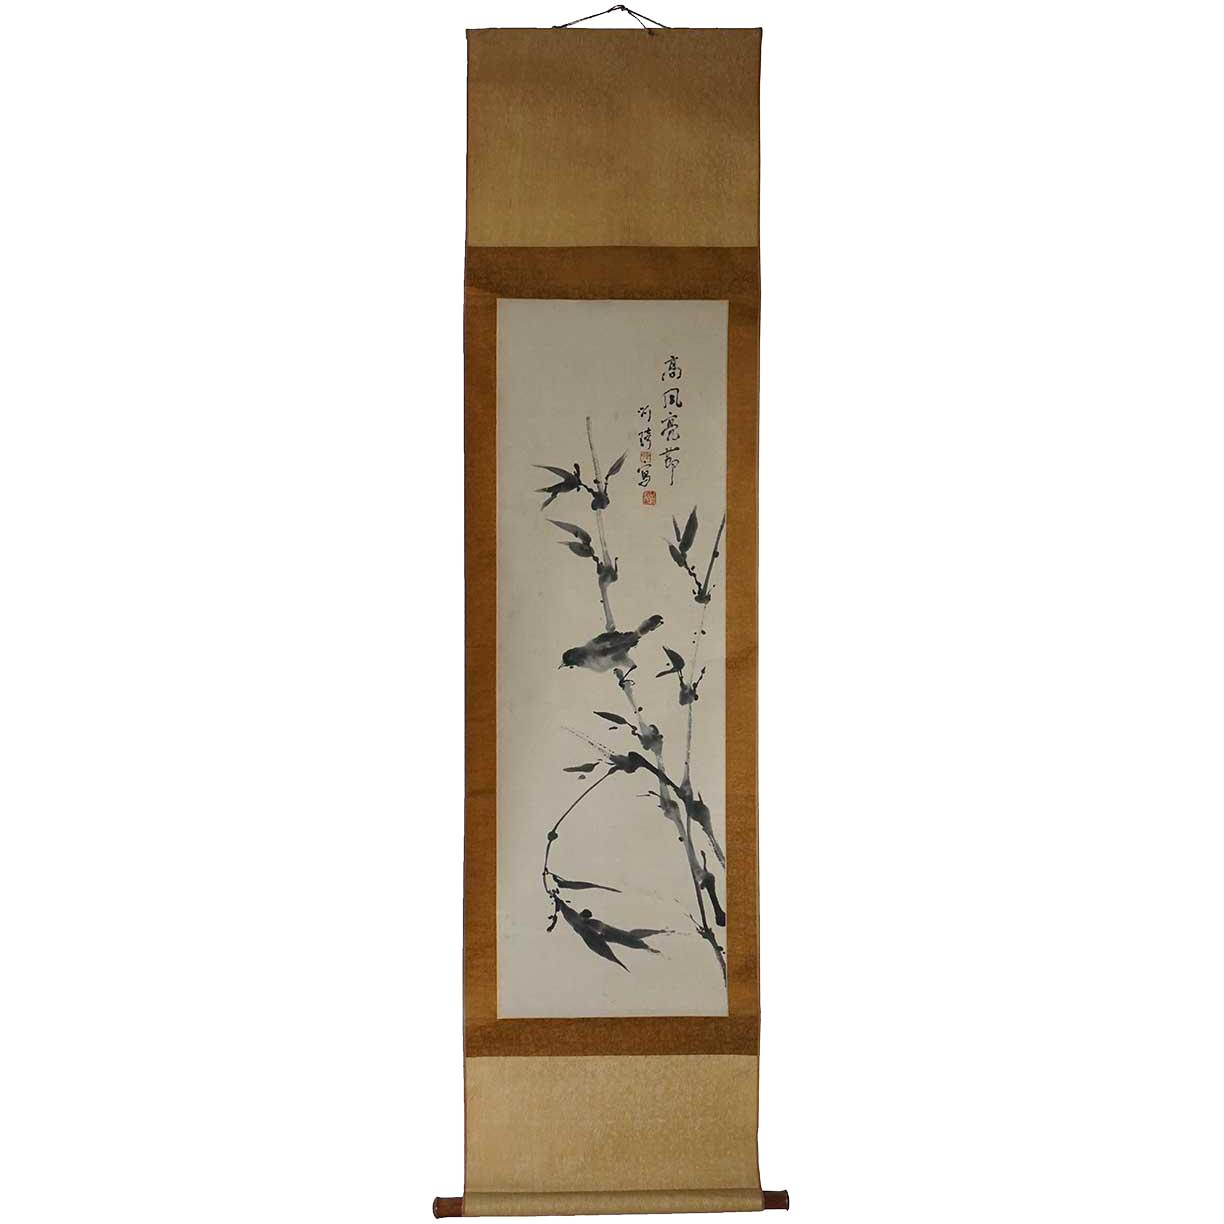 Vintage Japanese Ink Brush (Sumi-e) Hanging Scroll Painting (Kakejiku)